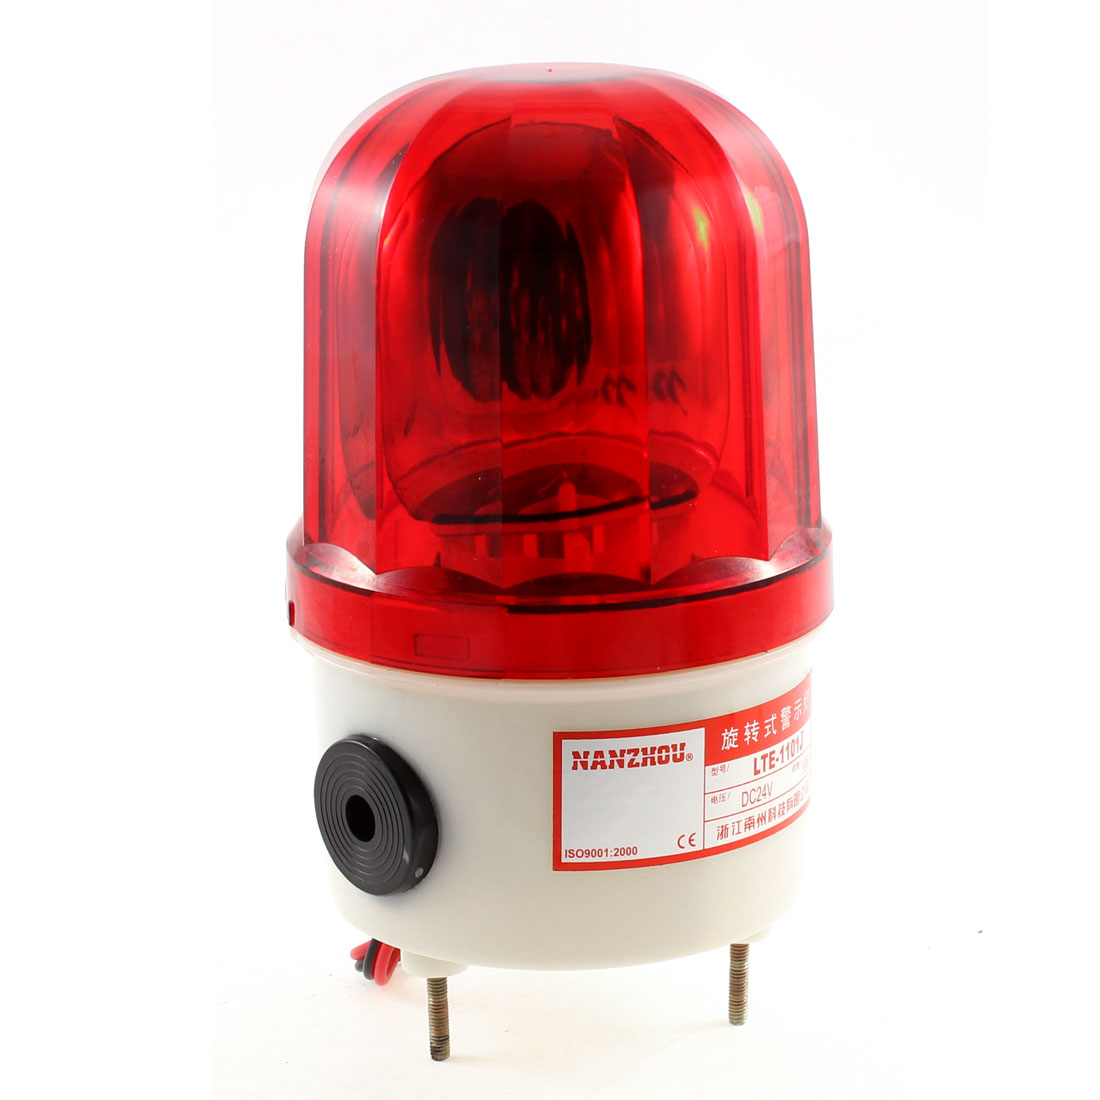 DC 24V 10W Industrial Alarm System Red Rotating Buzzer Warning Light LTE-1101